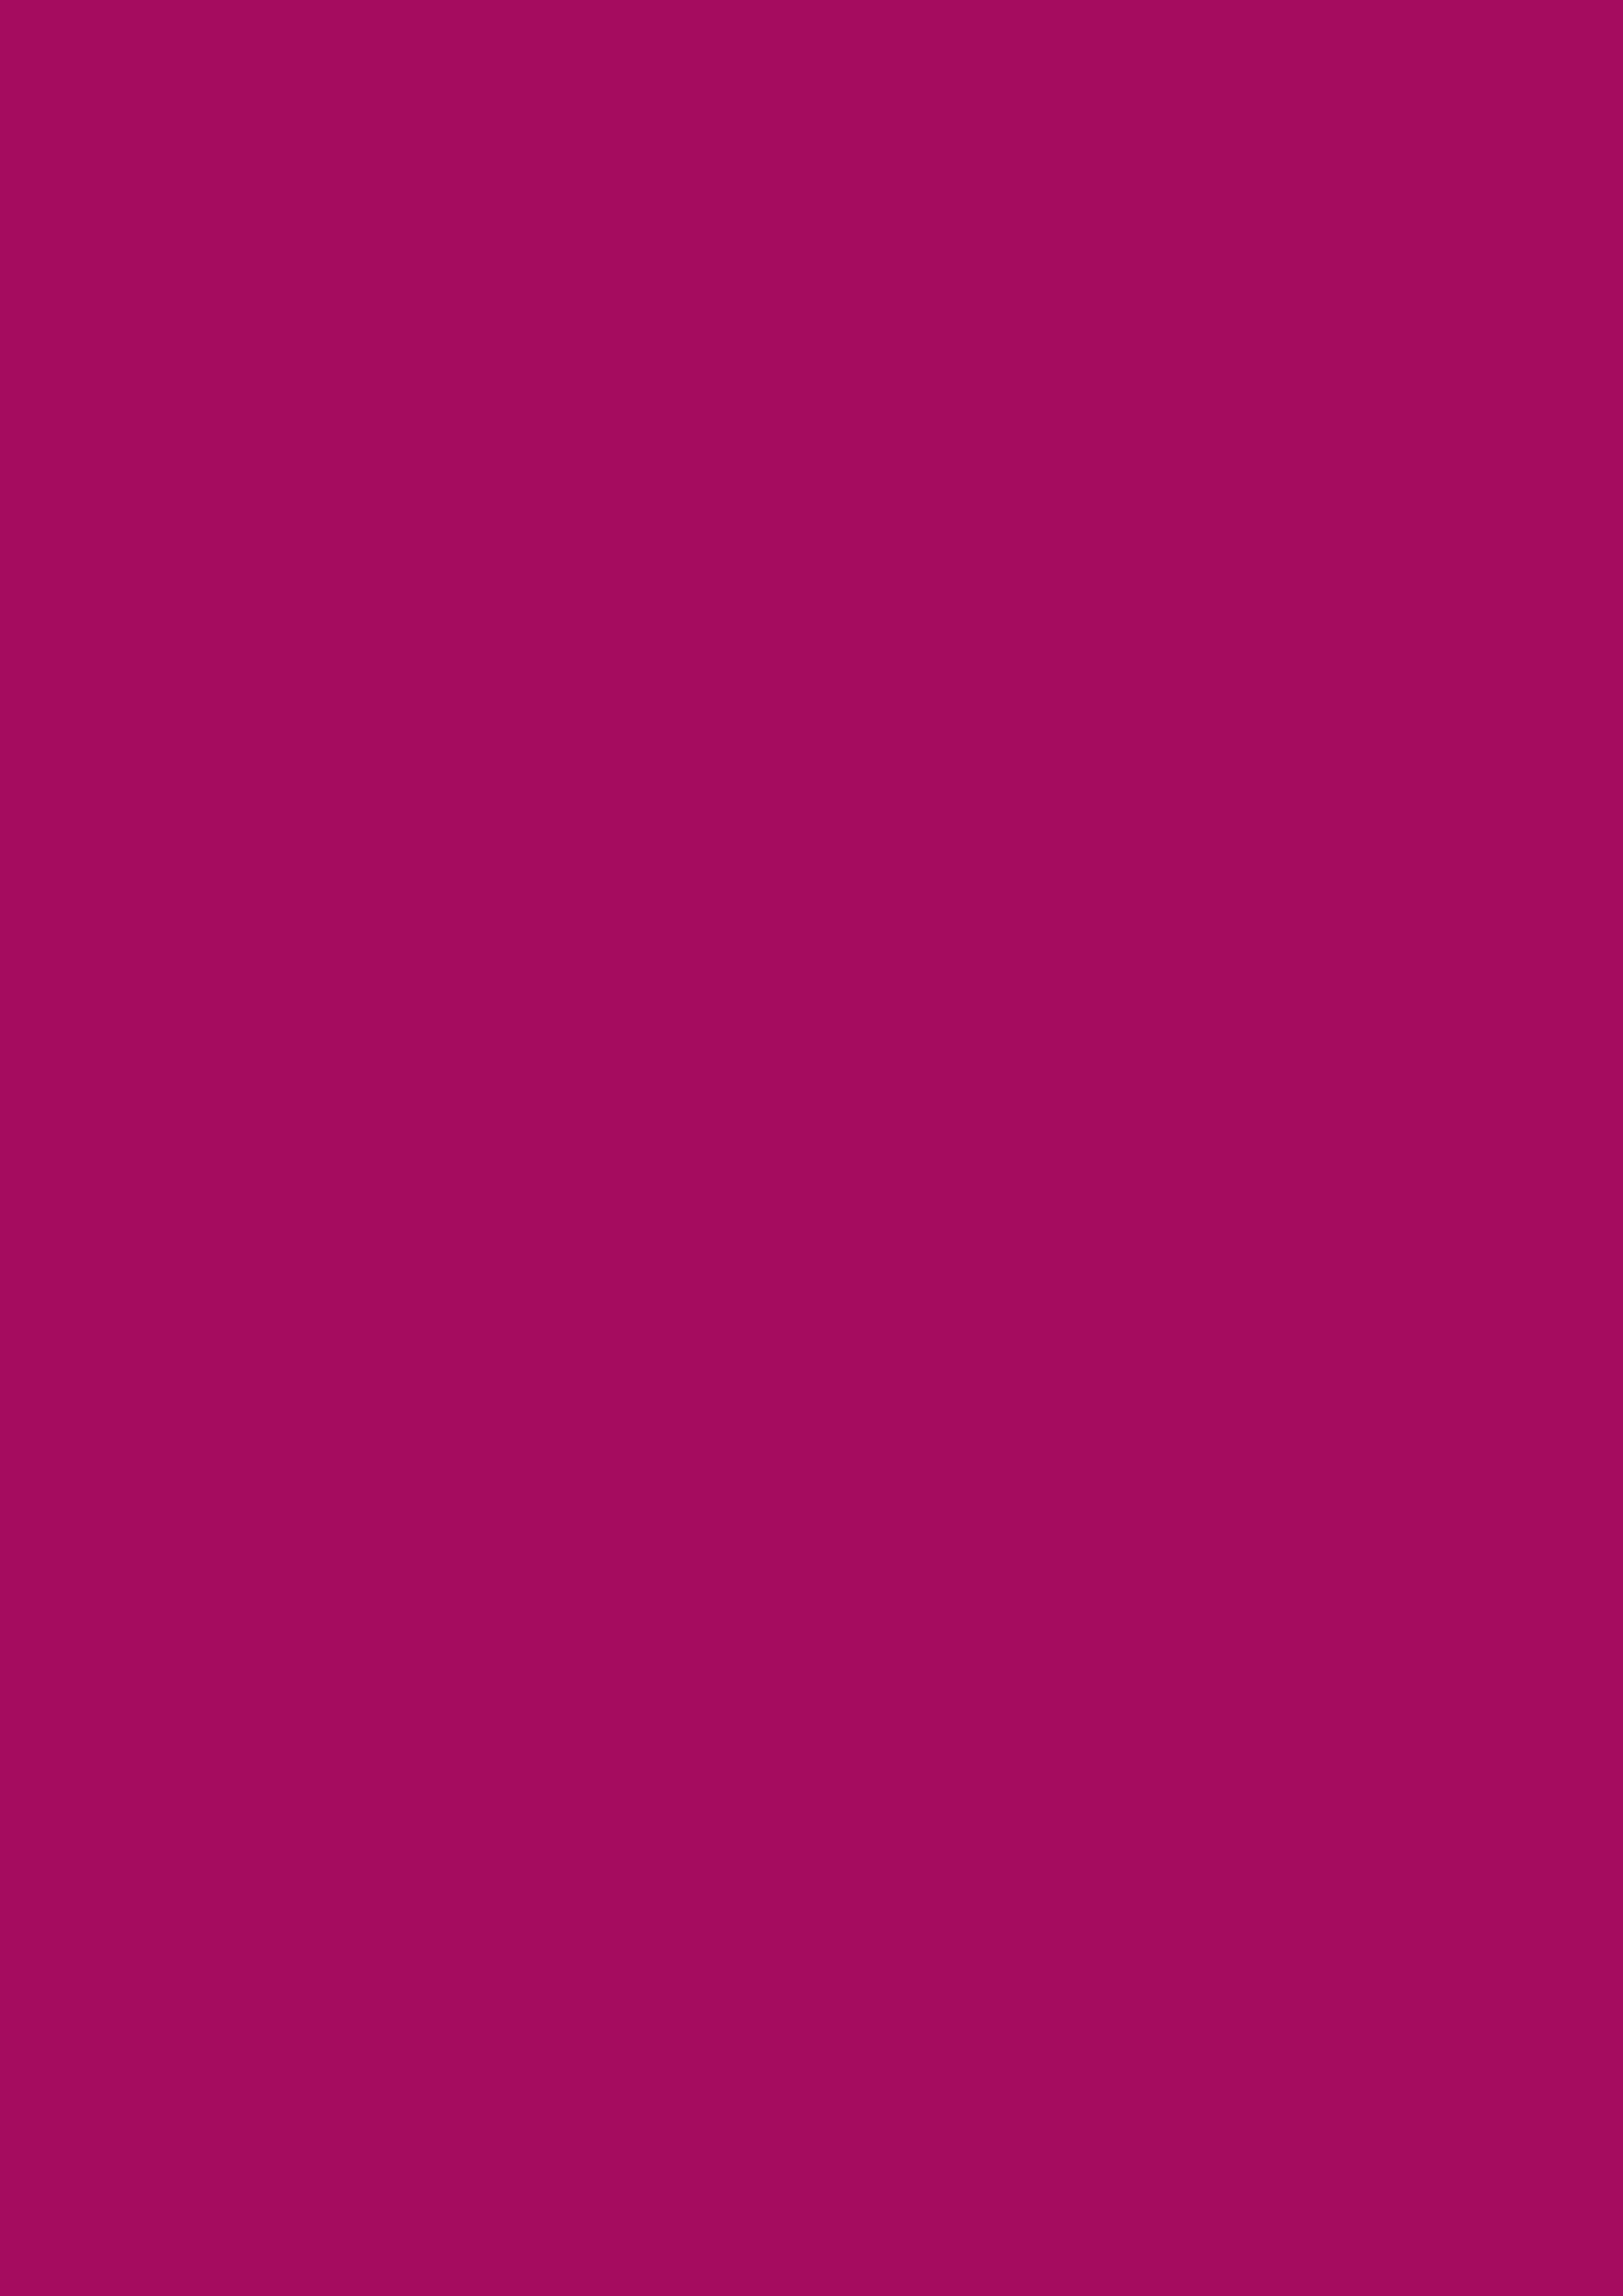 2480x3508 Jazzberry Jam Solid Color Background